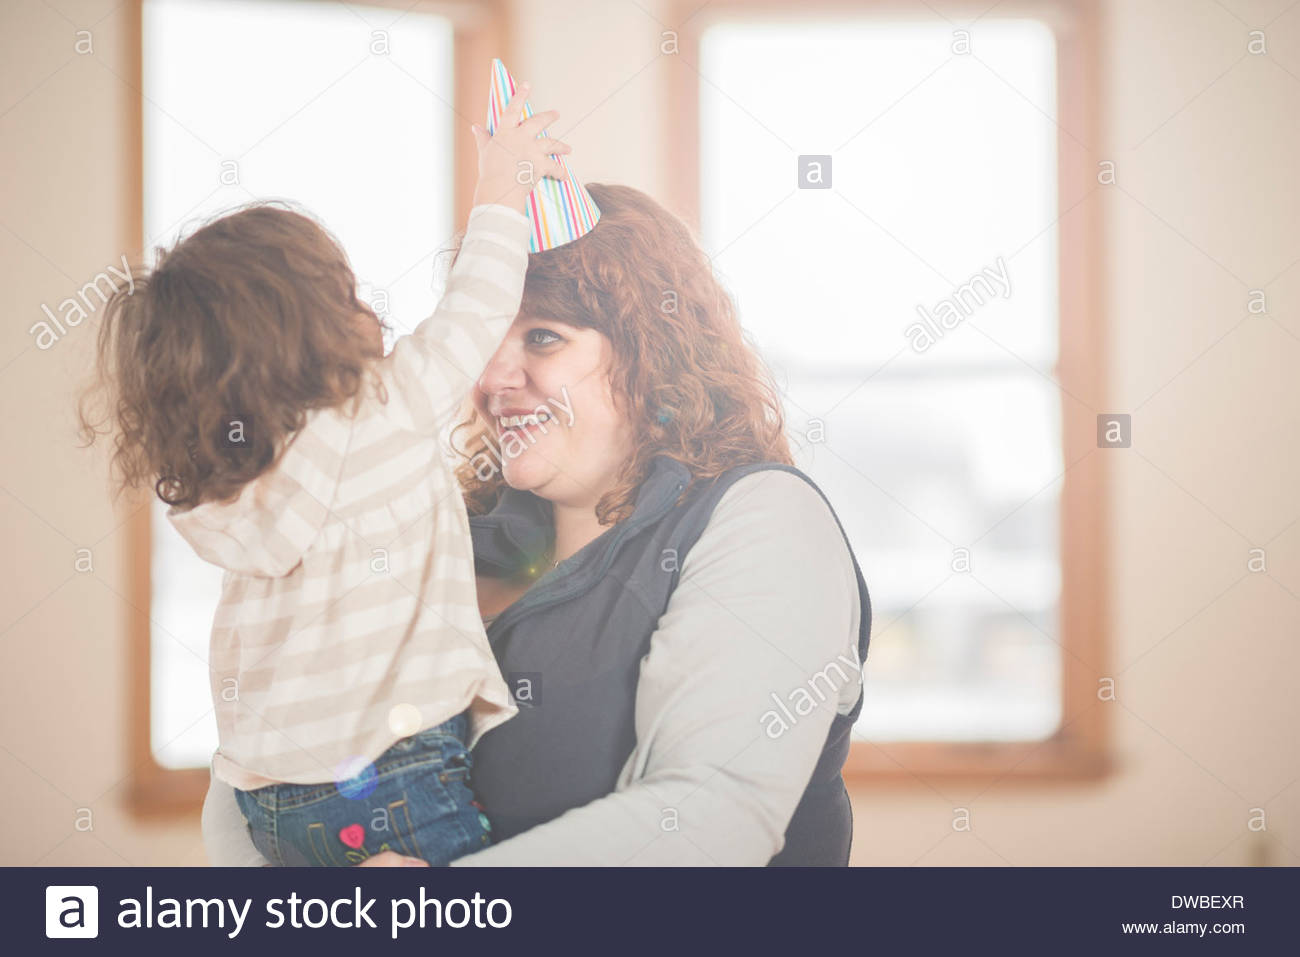 Female toddler and adoring grandmother - Stock Image